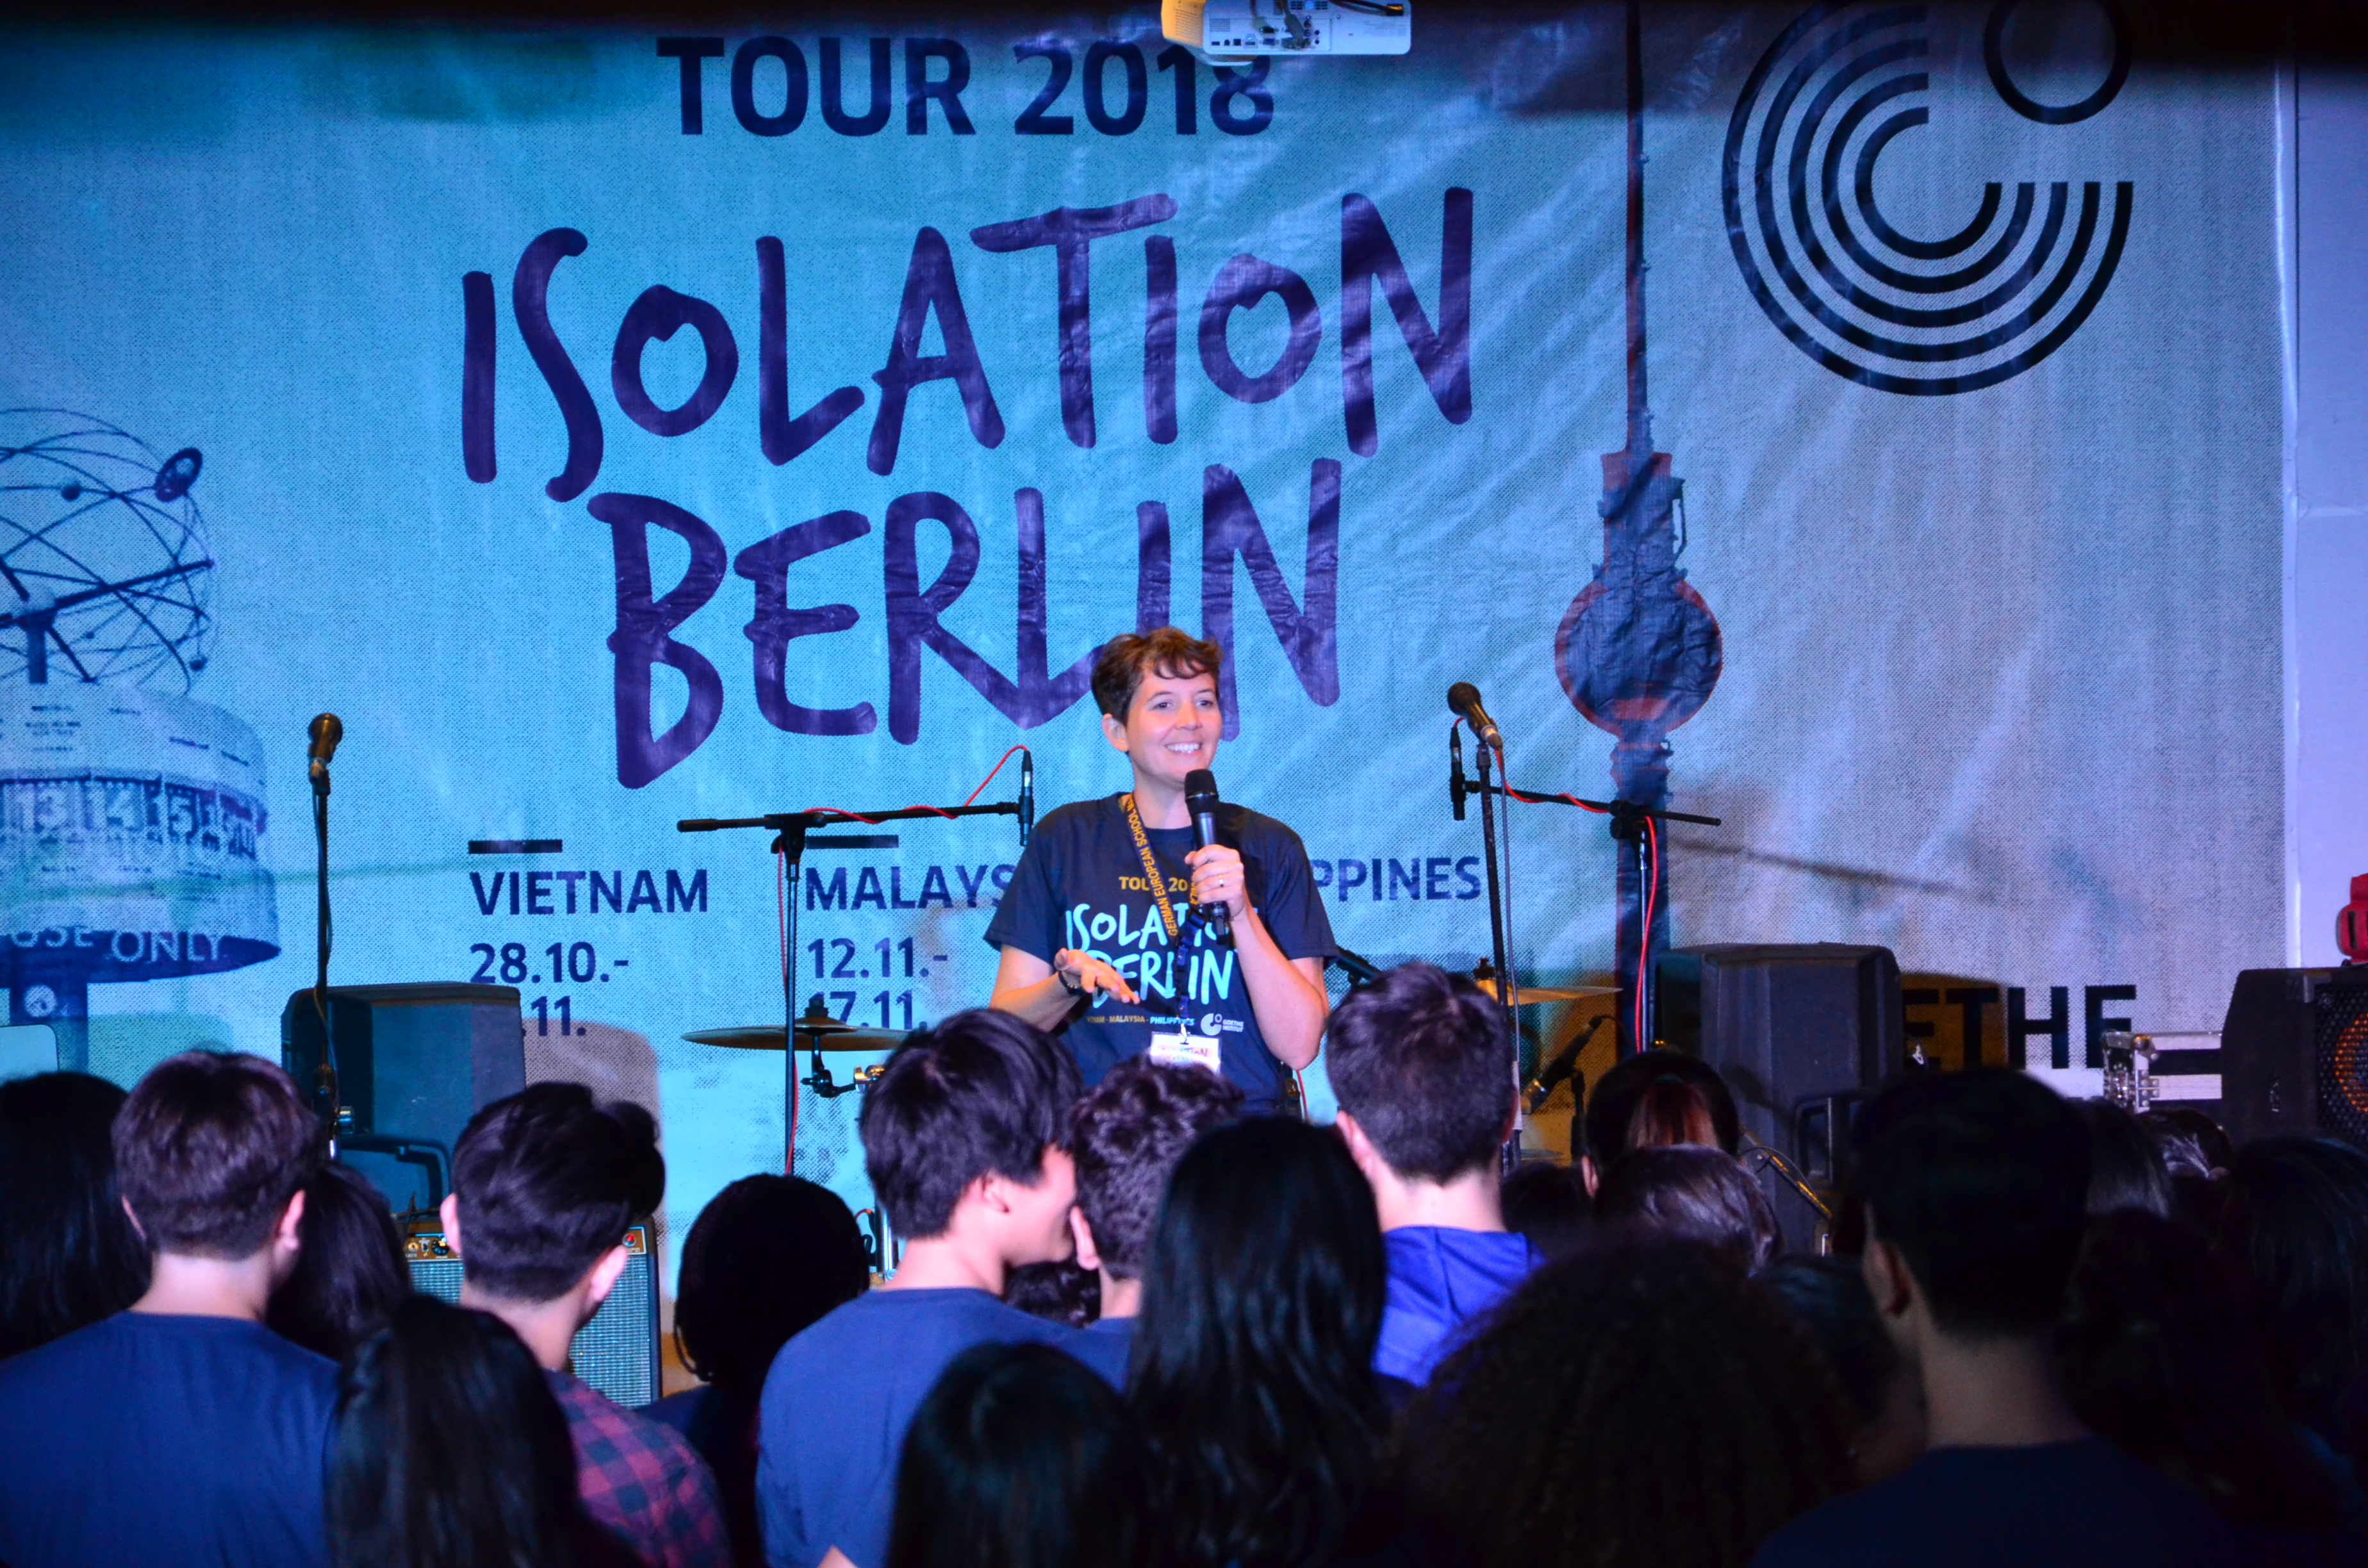 Isolation Berlin